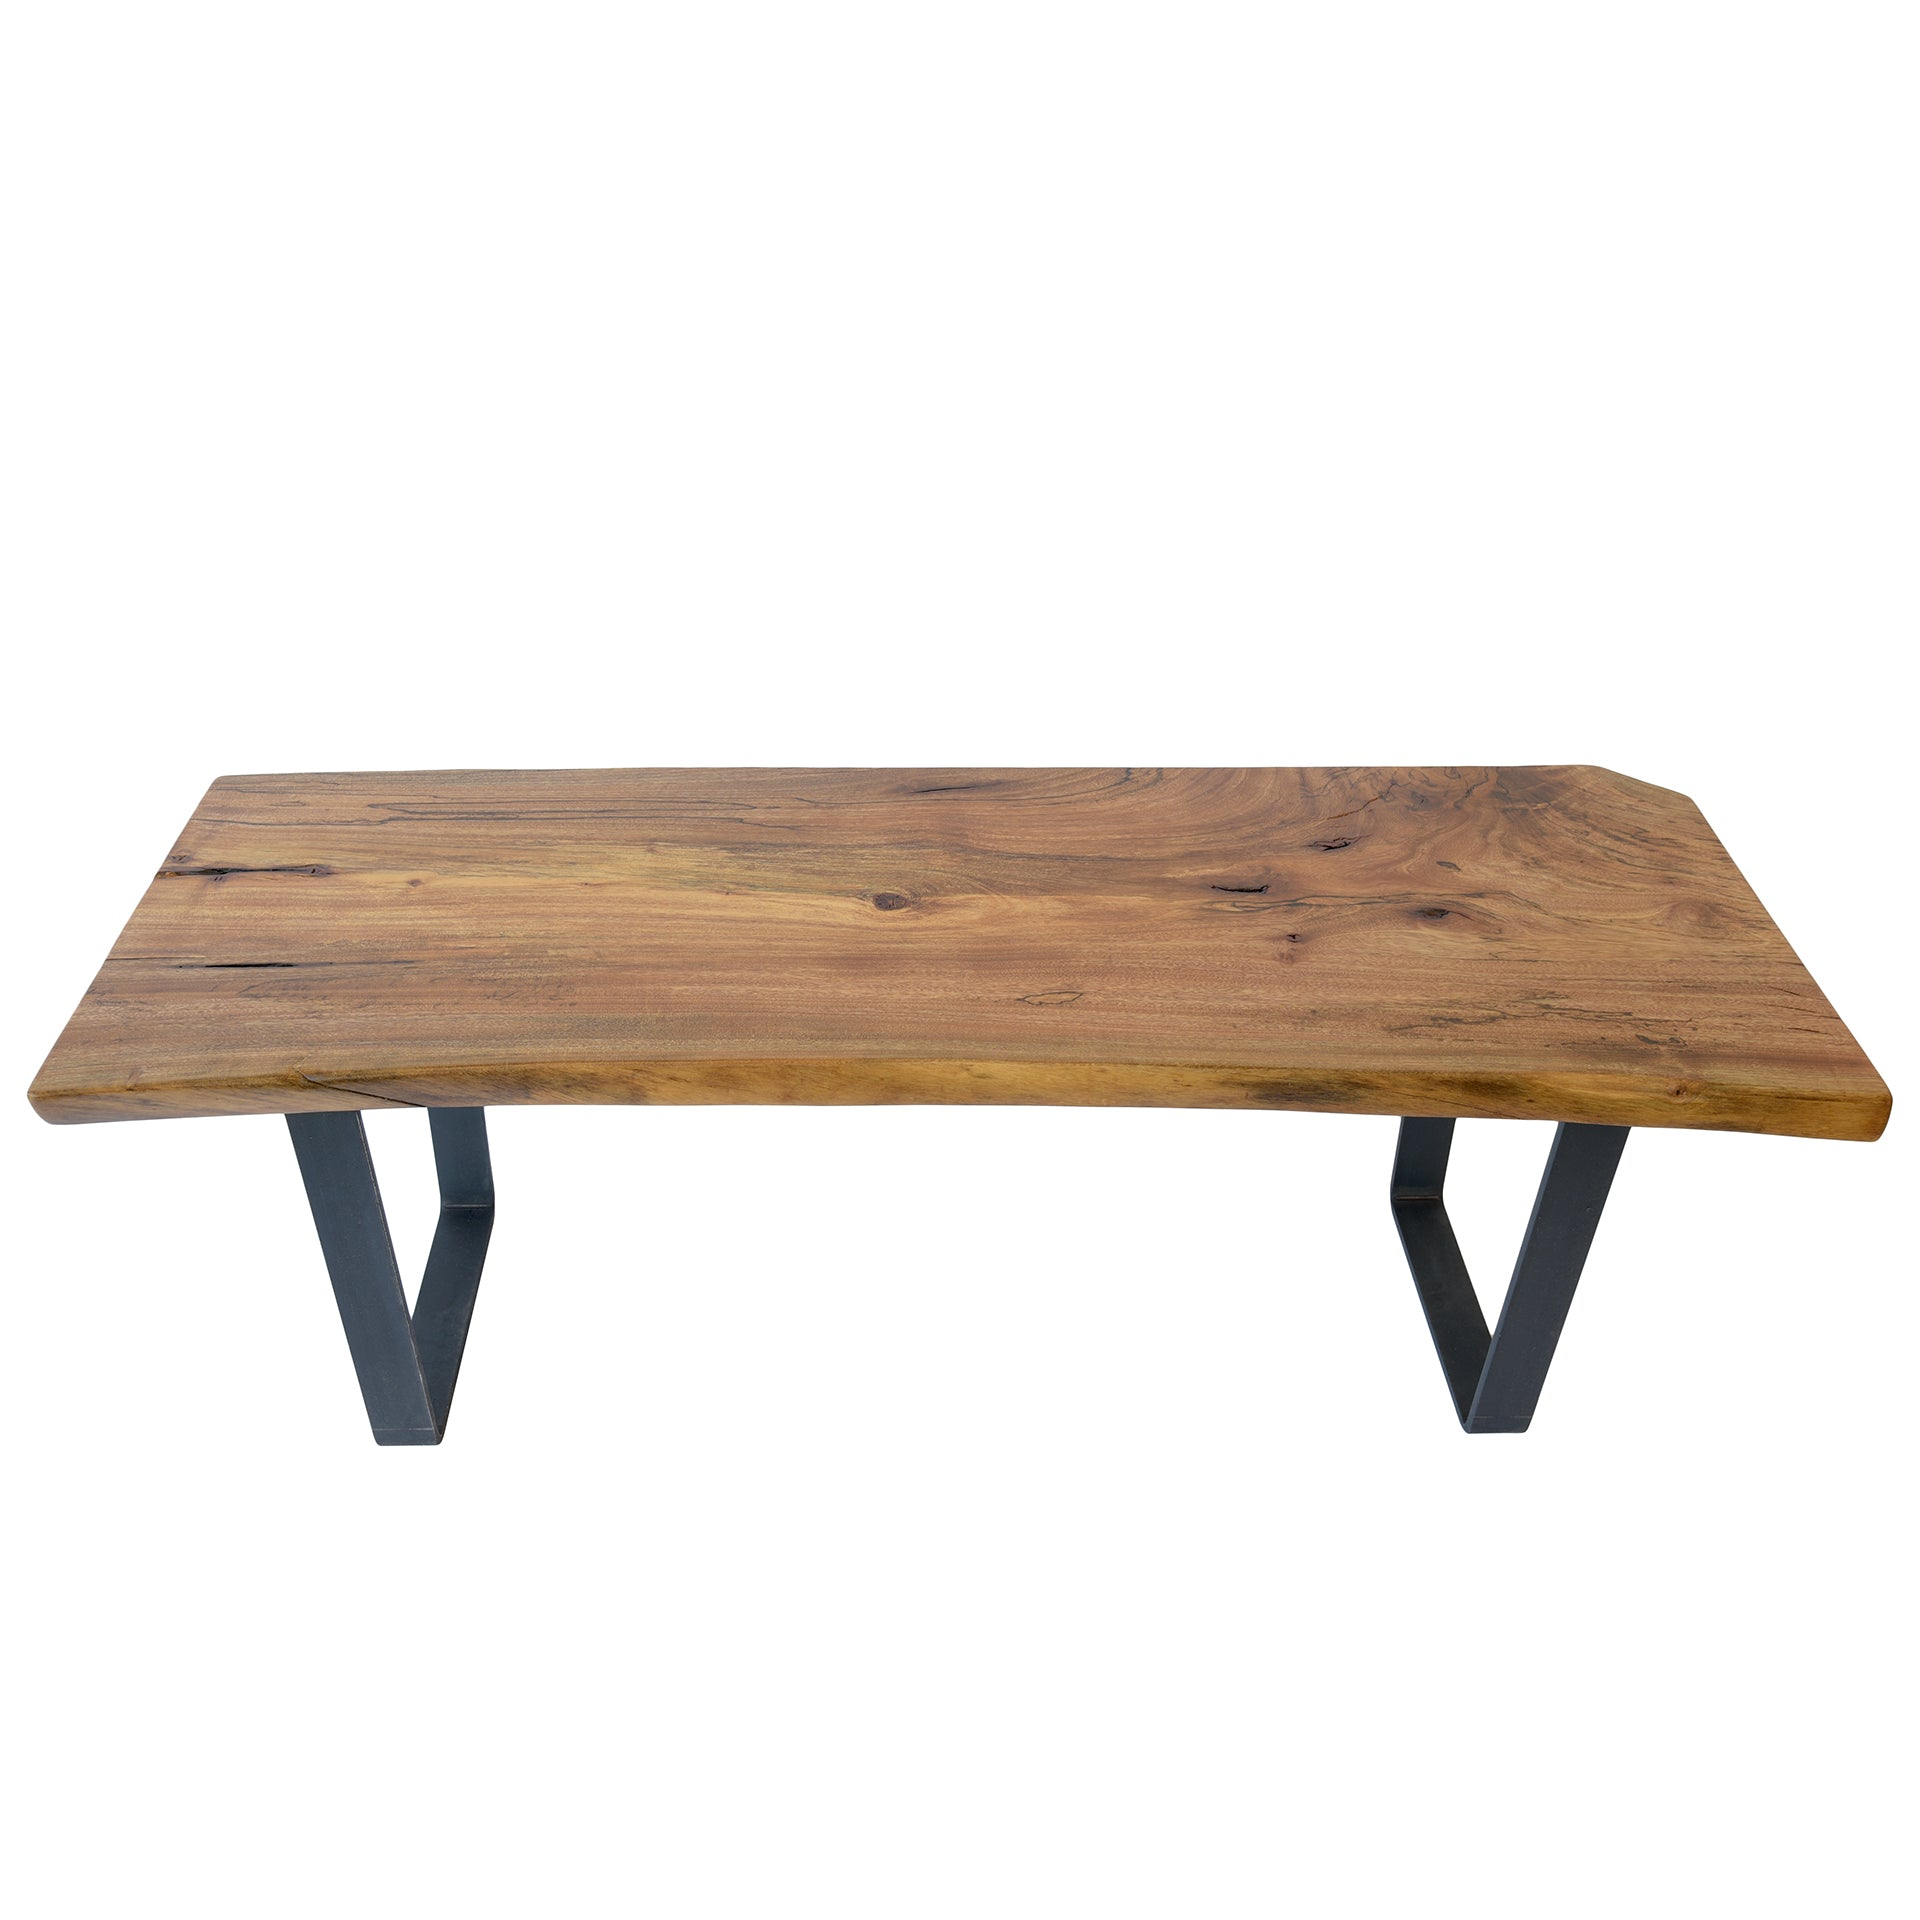 Vintage Industrial Live Edge Walnut Slab Coffee Table: Coffee Tables